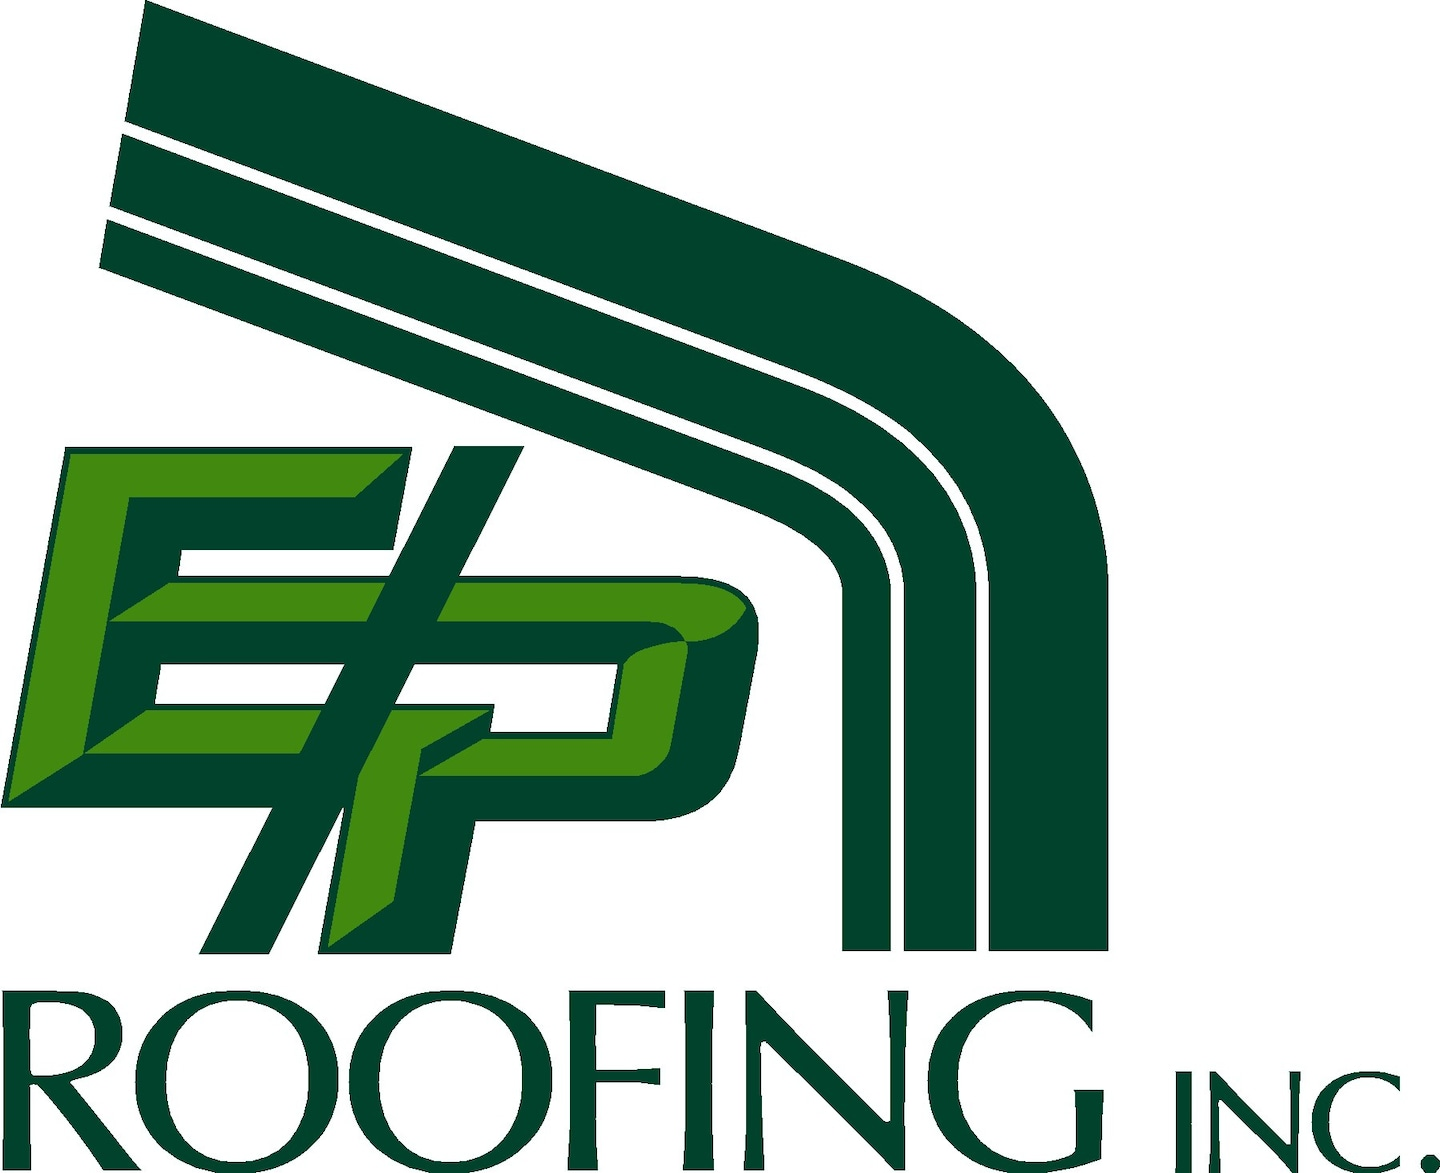 E/P Roofing Inc